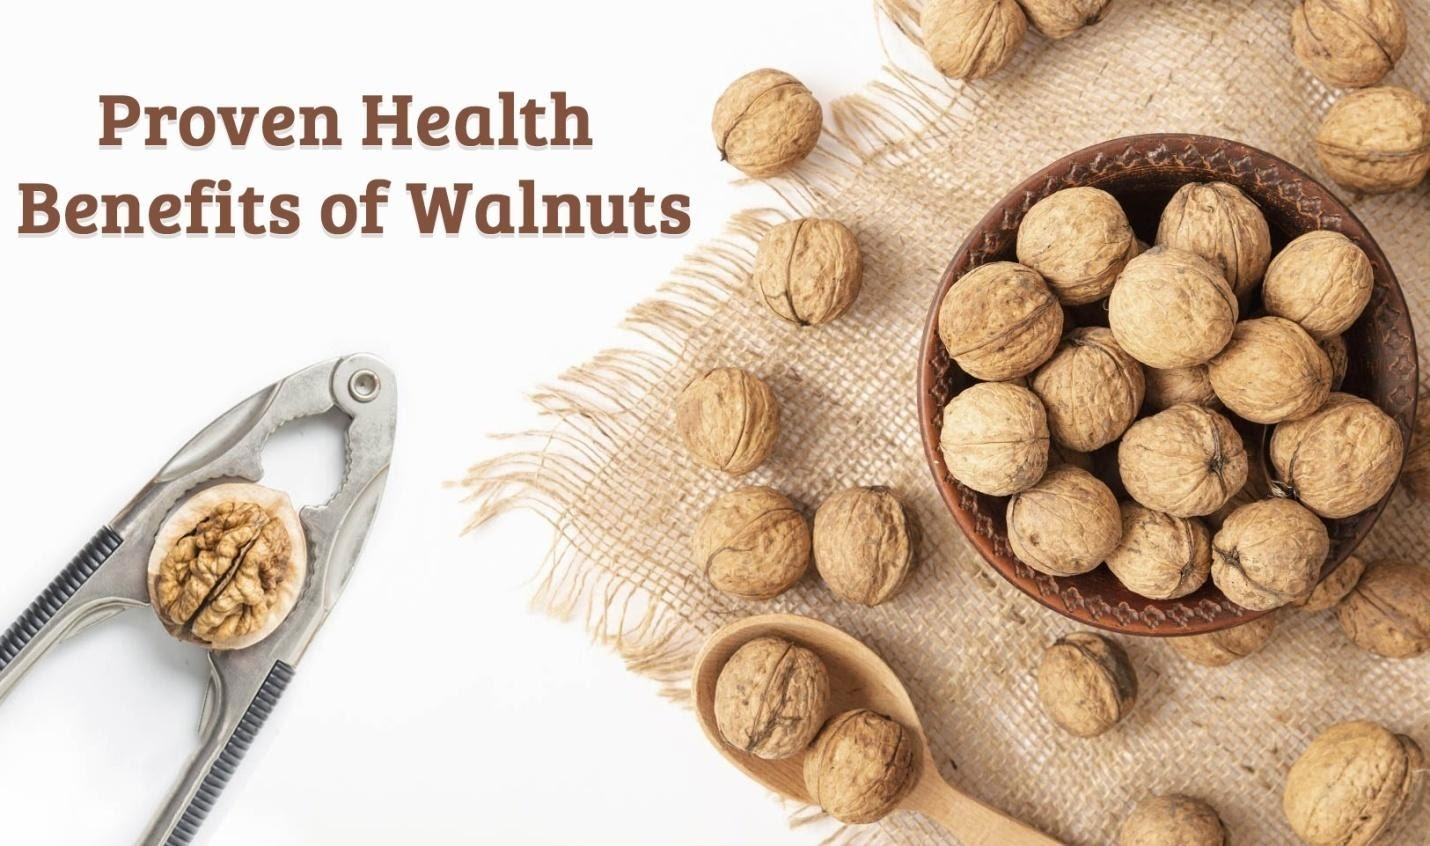 Proven health benefits of walnuts